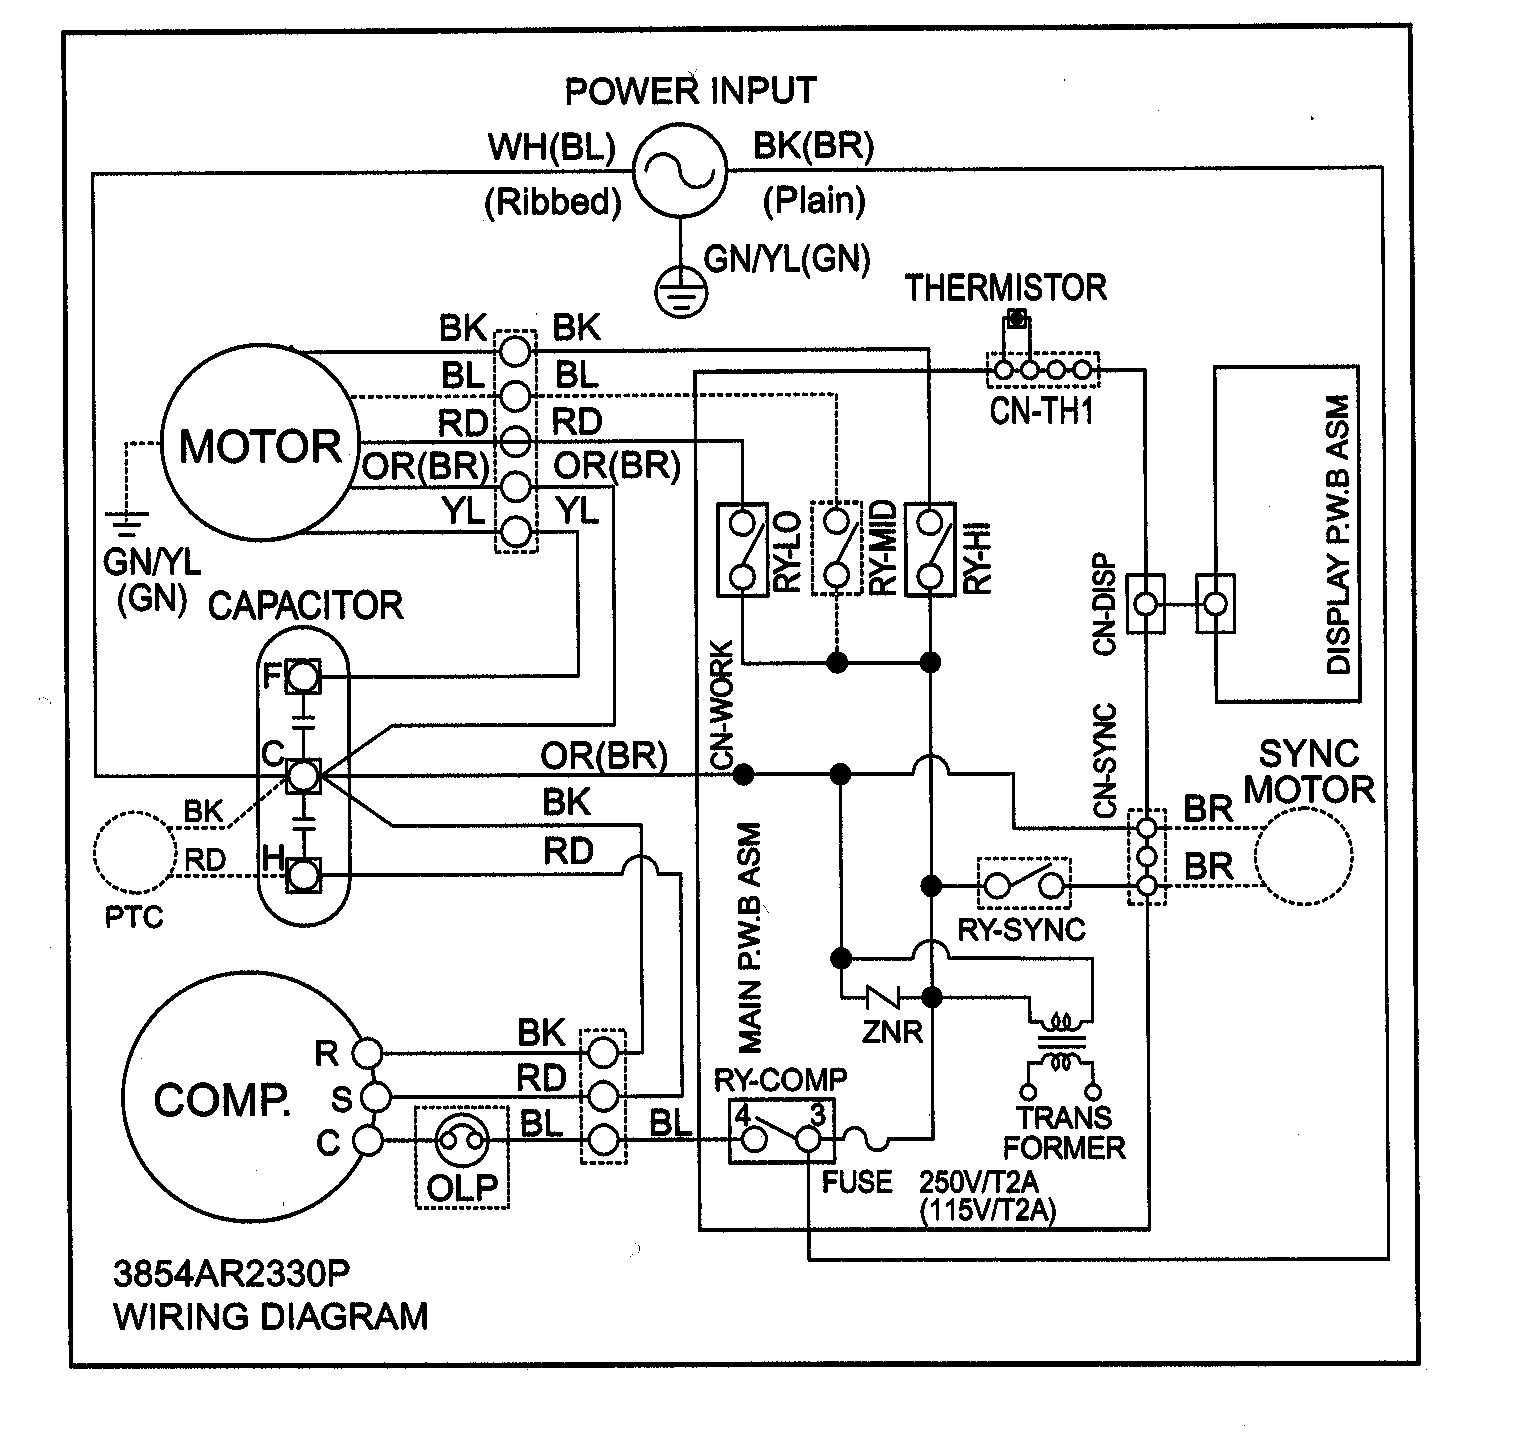 wiring diagram carrier central air conditioner 5 sphere fillable venn capacitor get free image